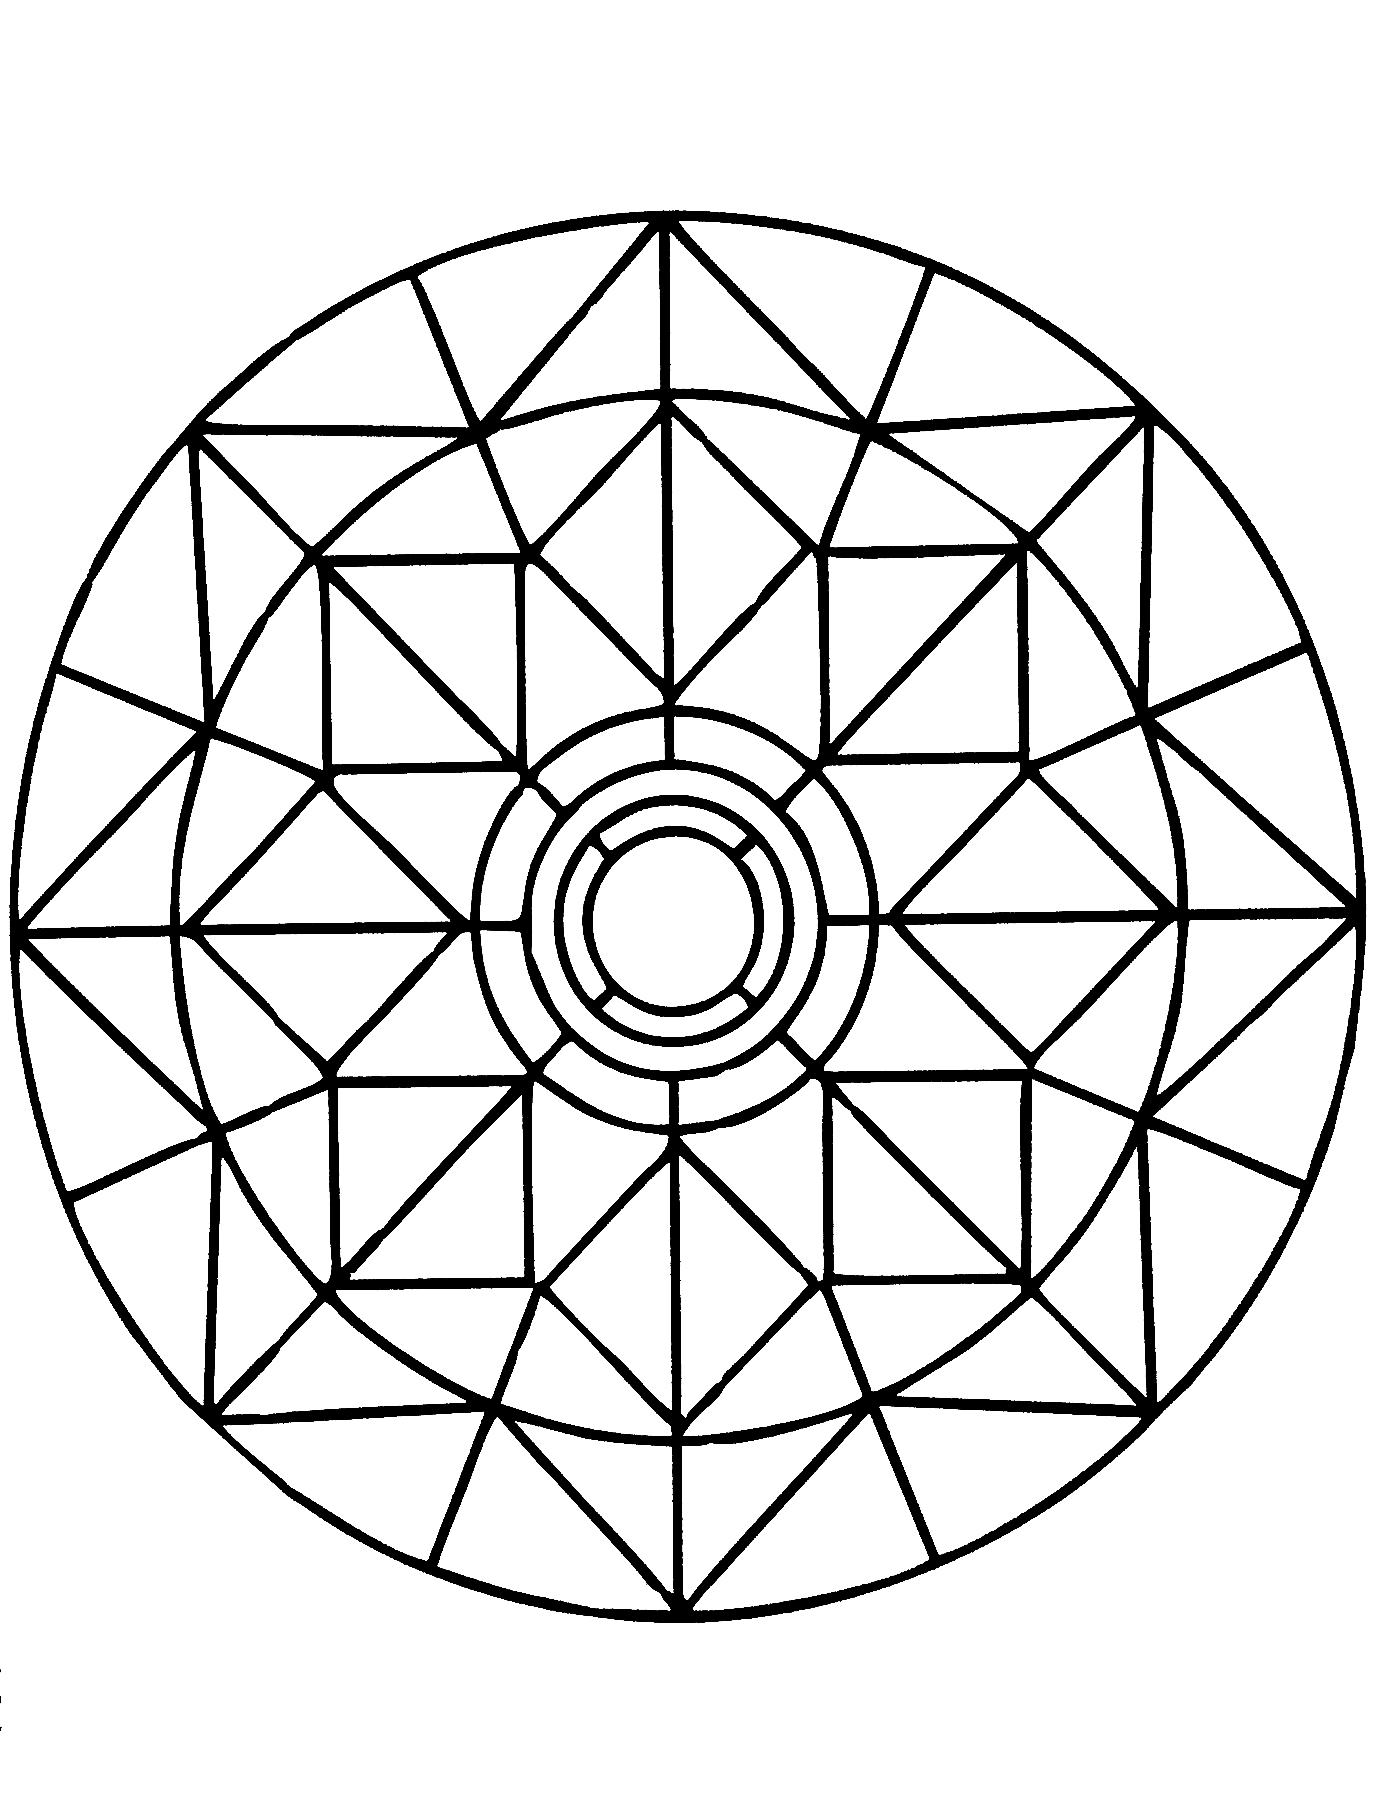 simple mandalas to color mandalas to download mandalas kids coloring pages mandalas simple to color